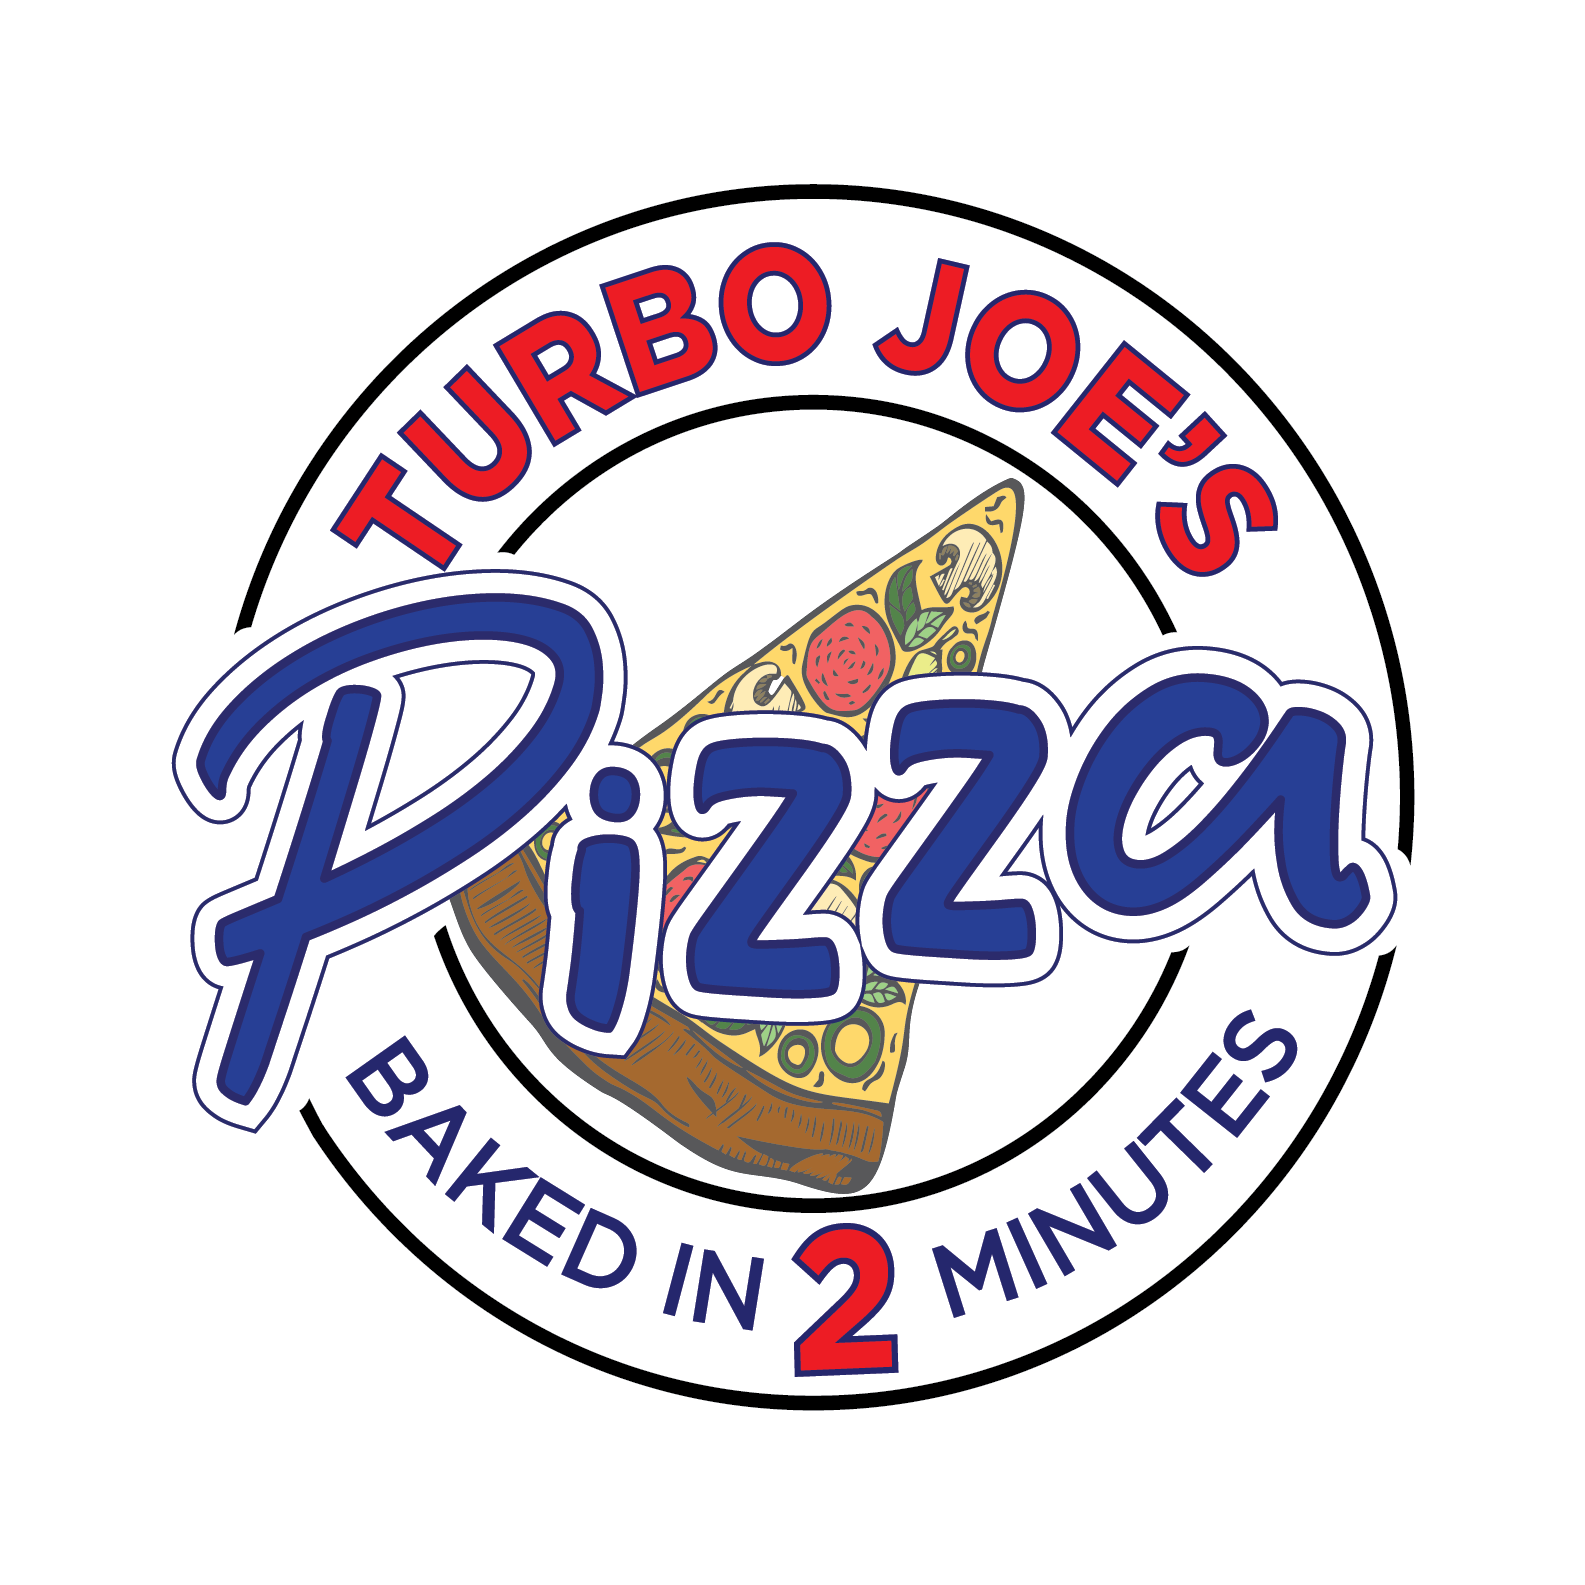 Turbo Joe's